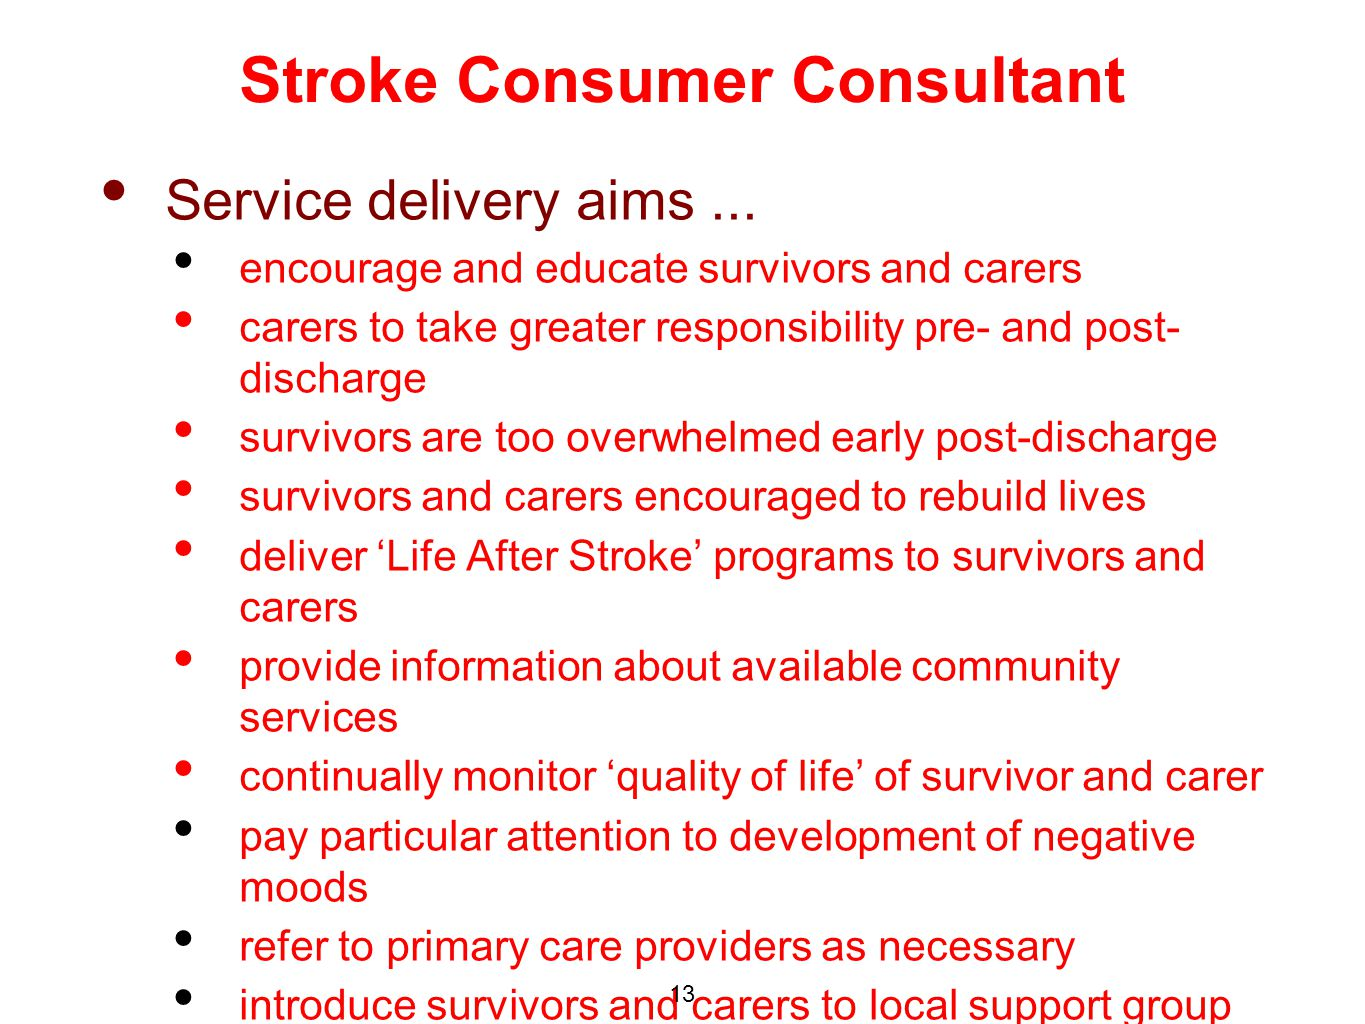 Service delivery aims...